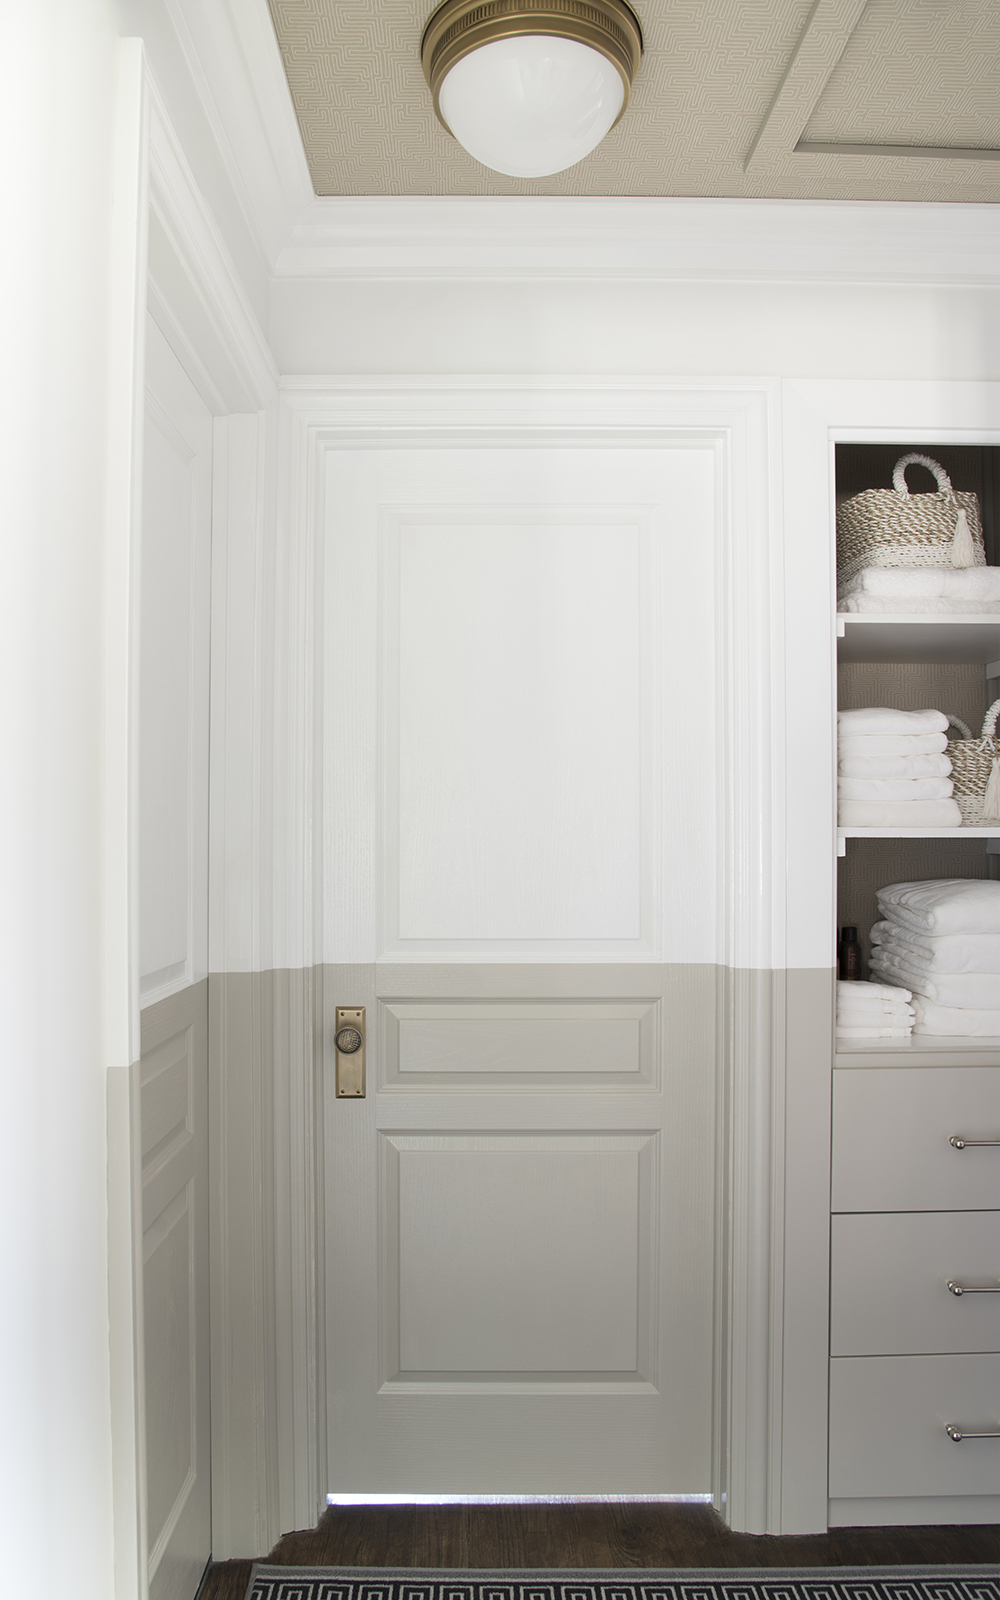 Linen Closet Update & Tips for Choosing The Right Paint - roomfortuesday.com